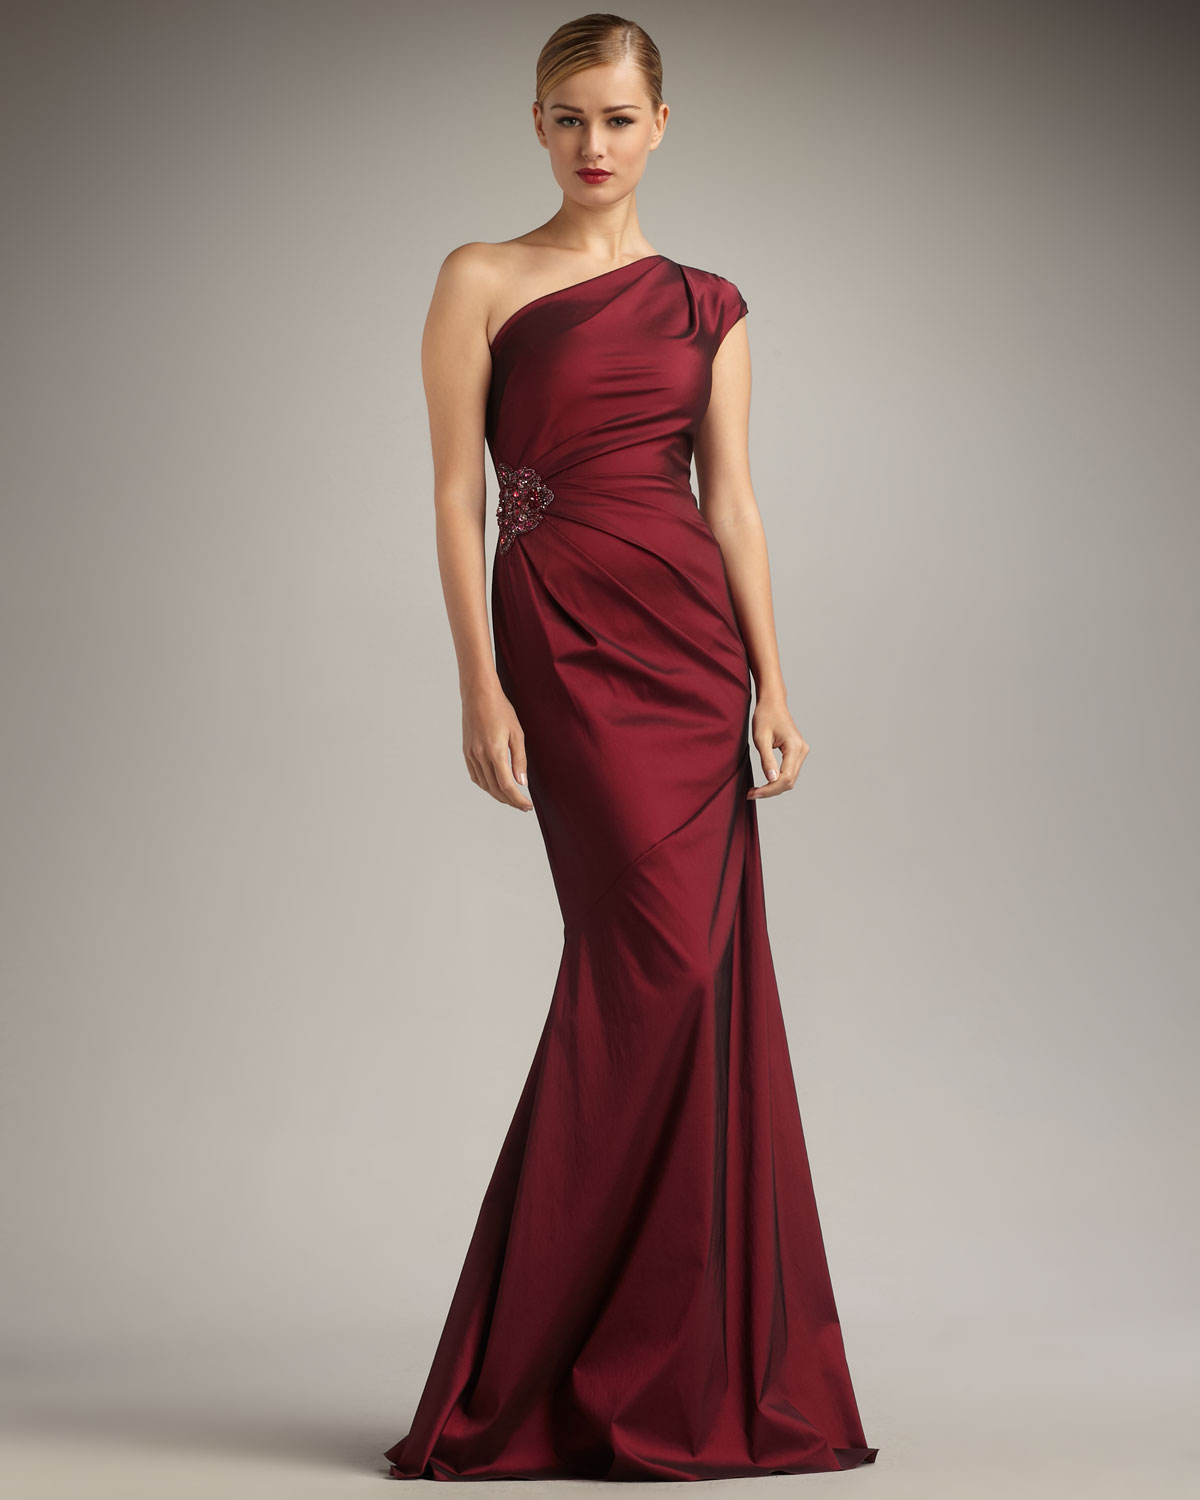 Lyst - David Meister Cap-sleeve One-shoulder Gown in Red